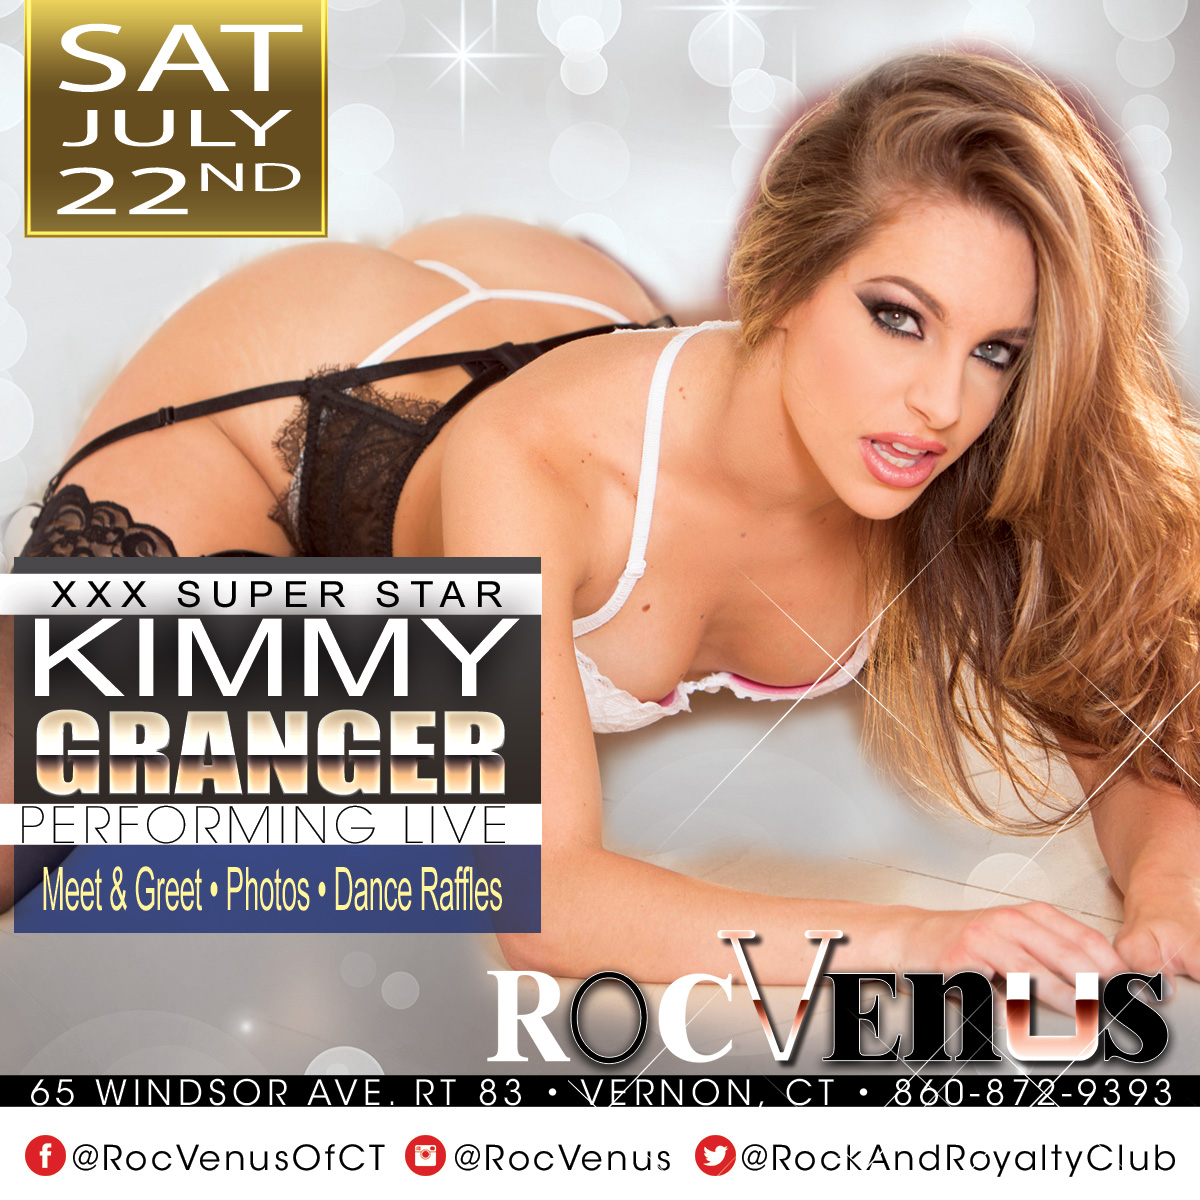 Porn Star Kimmy Granger | Hollywood Strip Club Connecticut